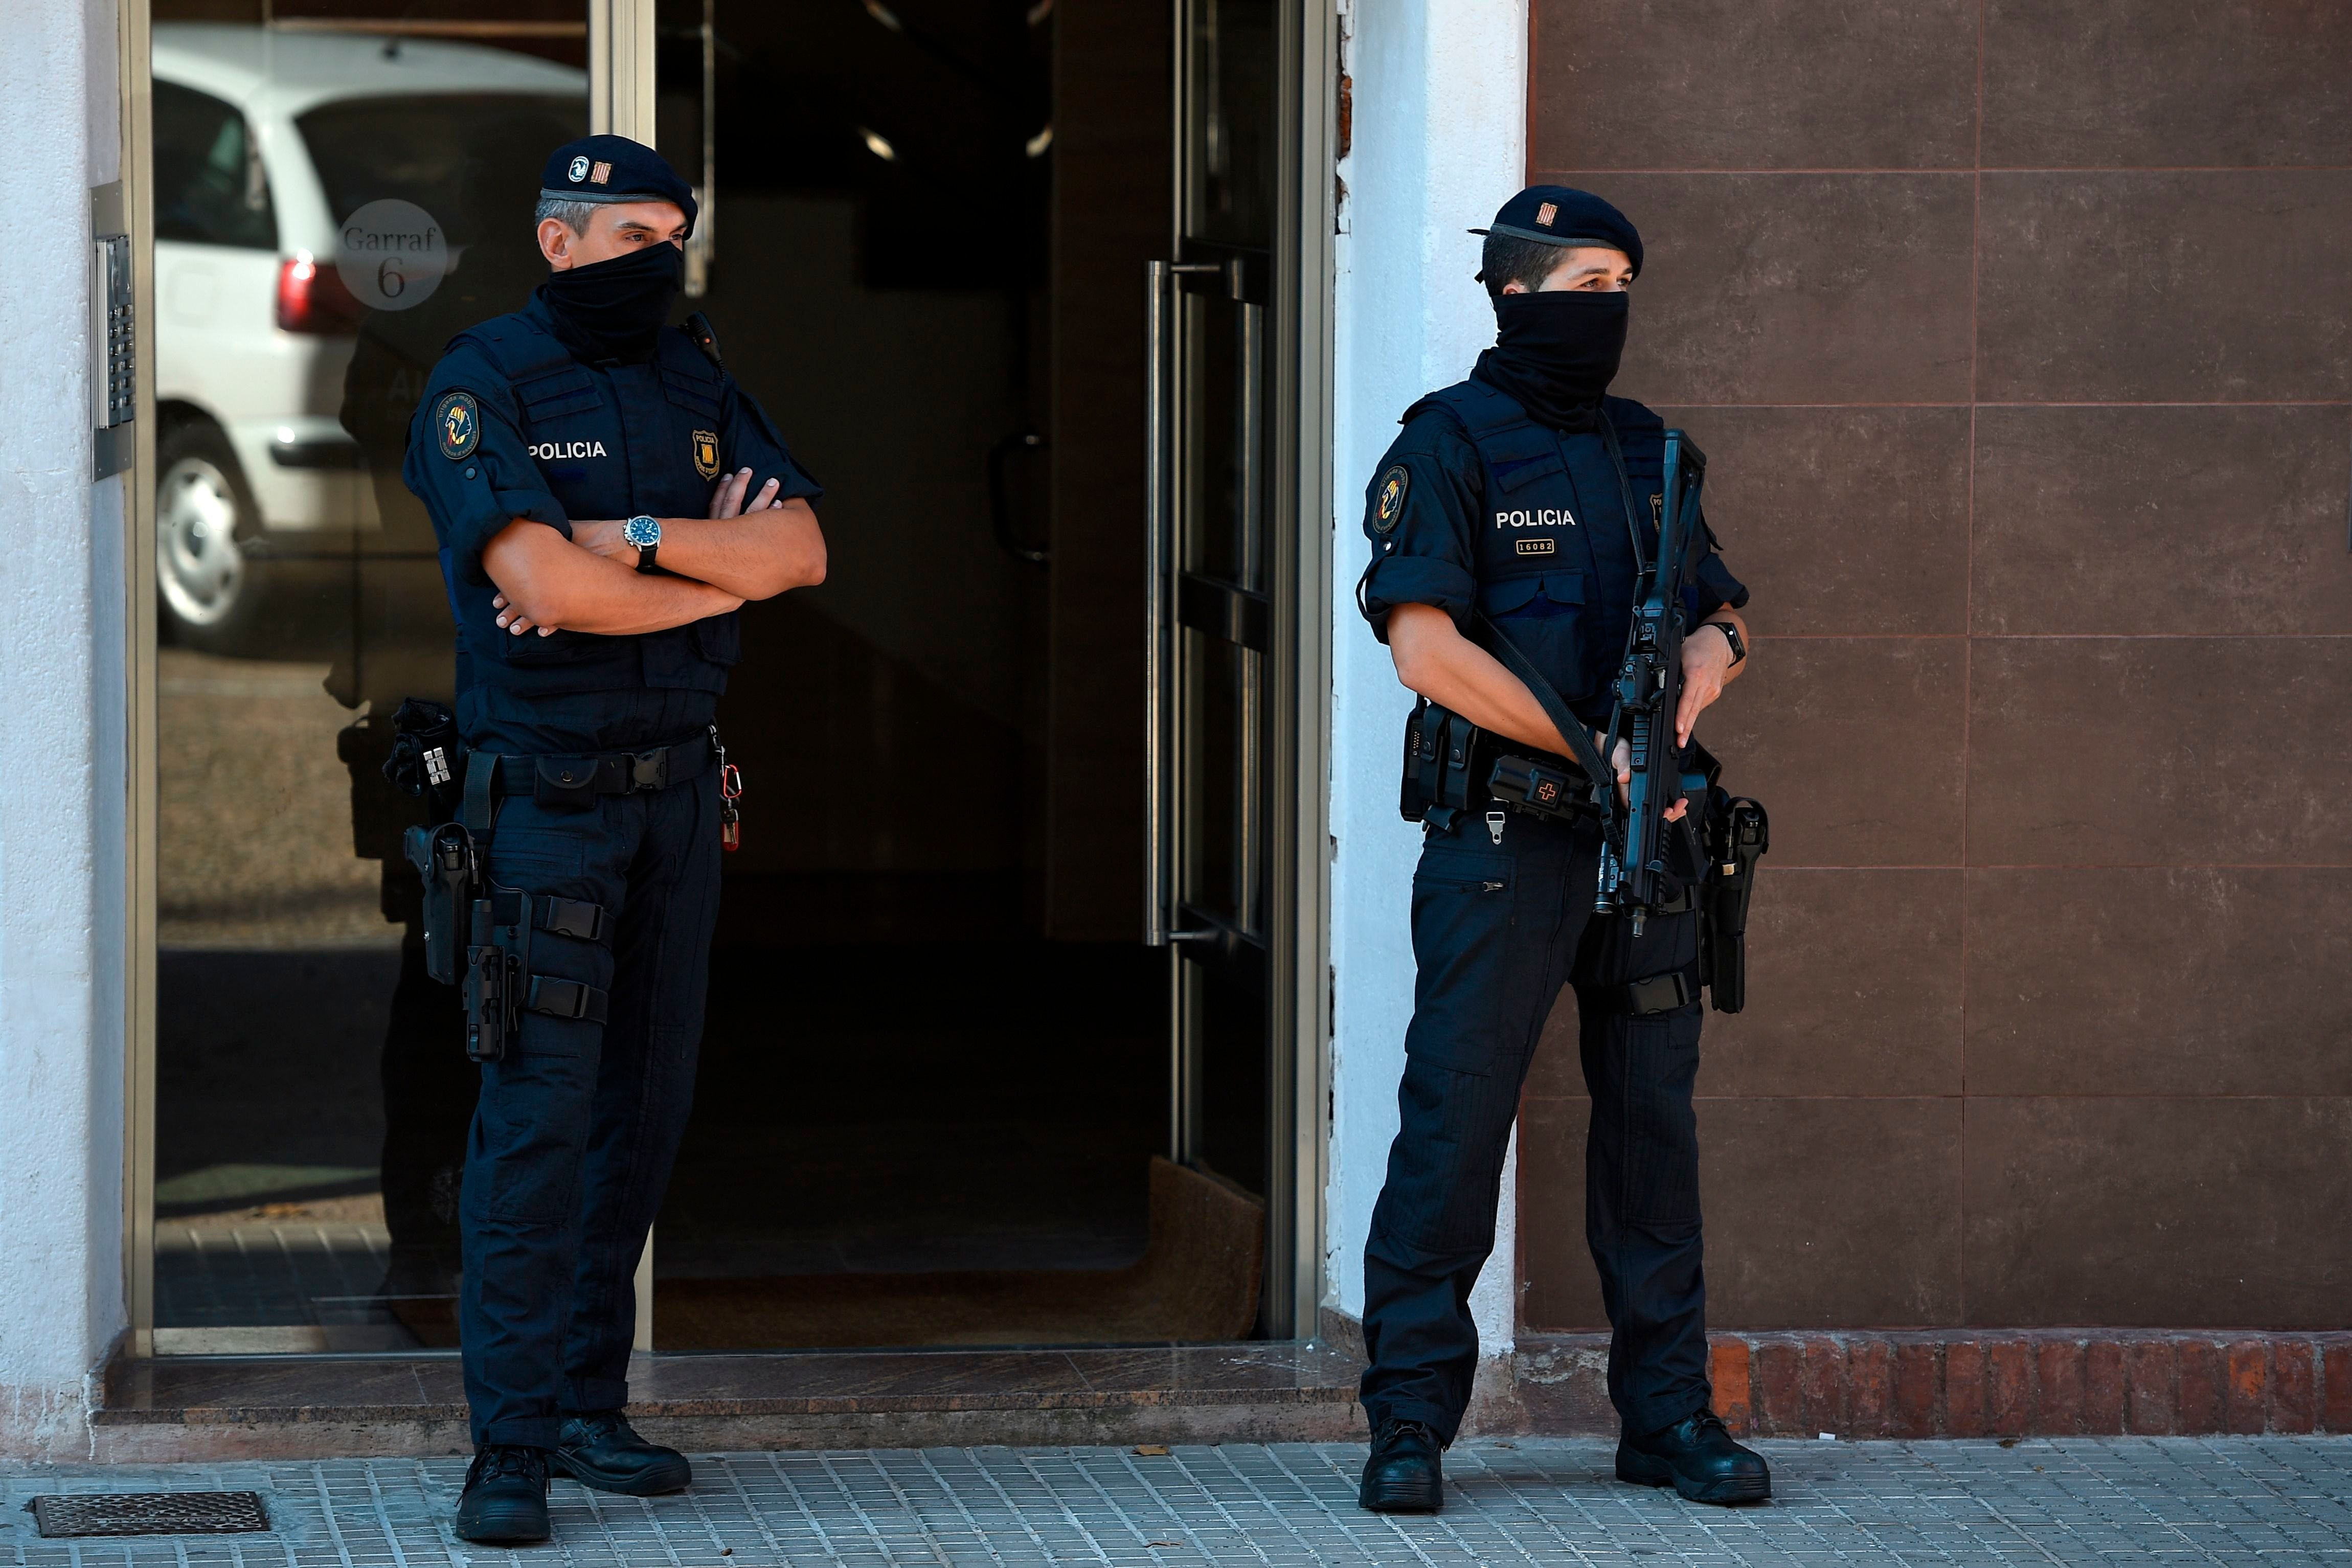 Police in Barcelona shoot knife attacker